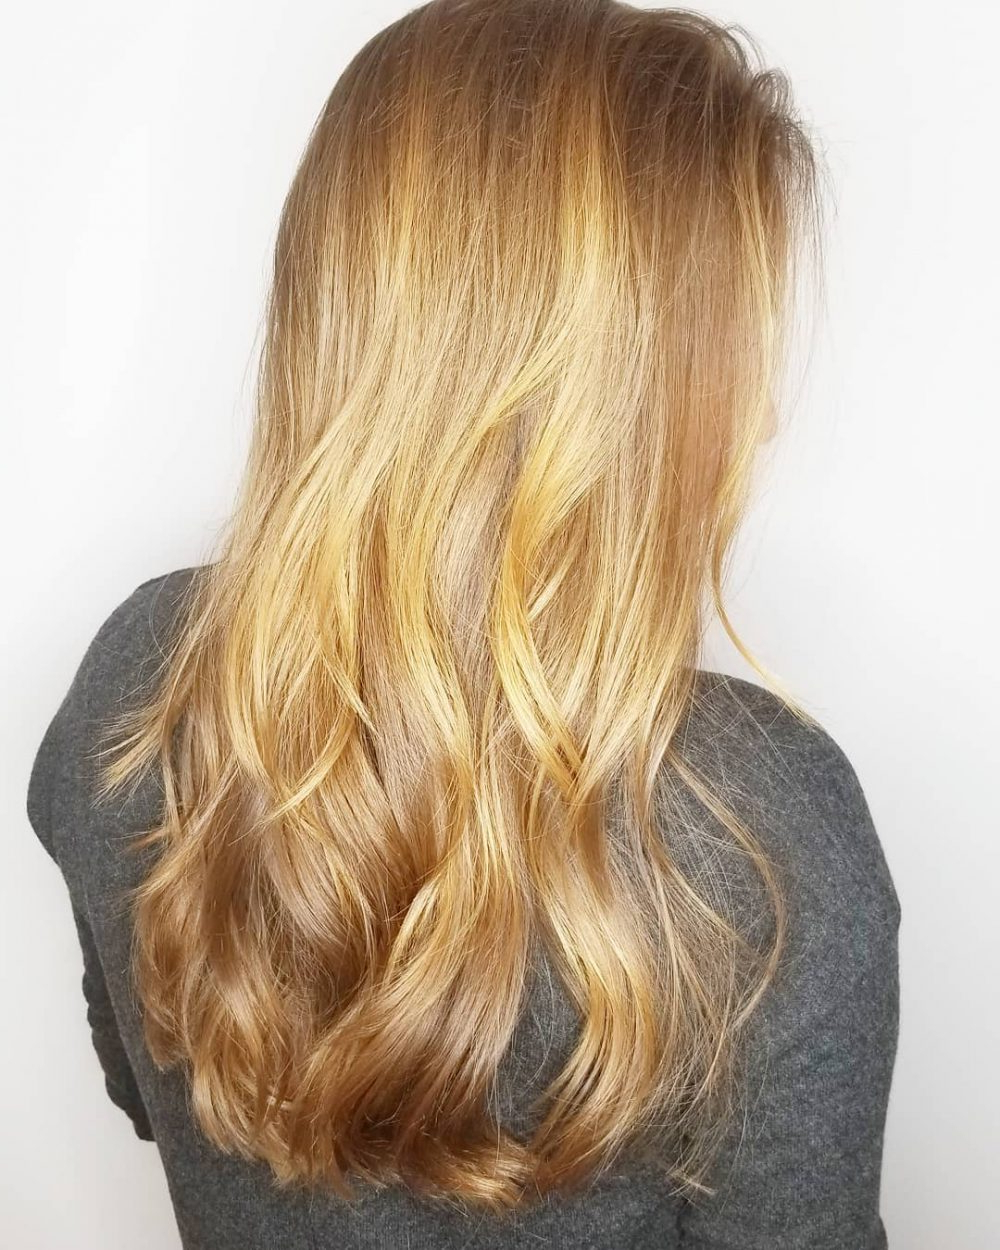 36 Perfect Hairstyles For Long Thin Hair (Trending For 2019!) For Fashionable Long Texture Boosting Layers Hairstyles (Gallery 8 of 20)